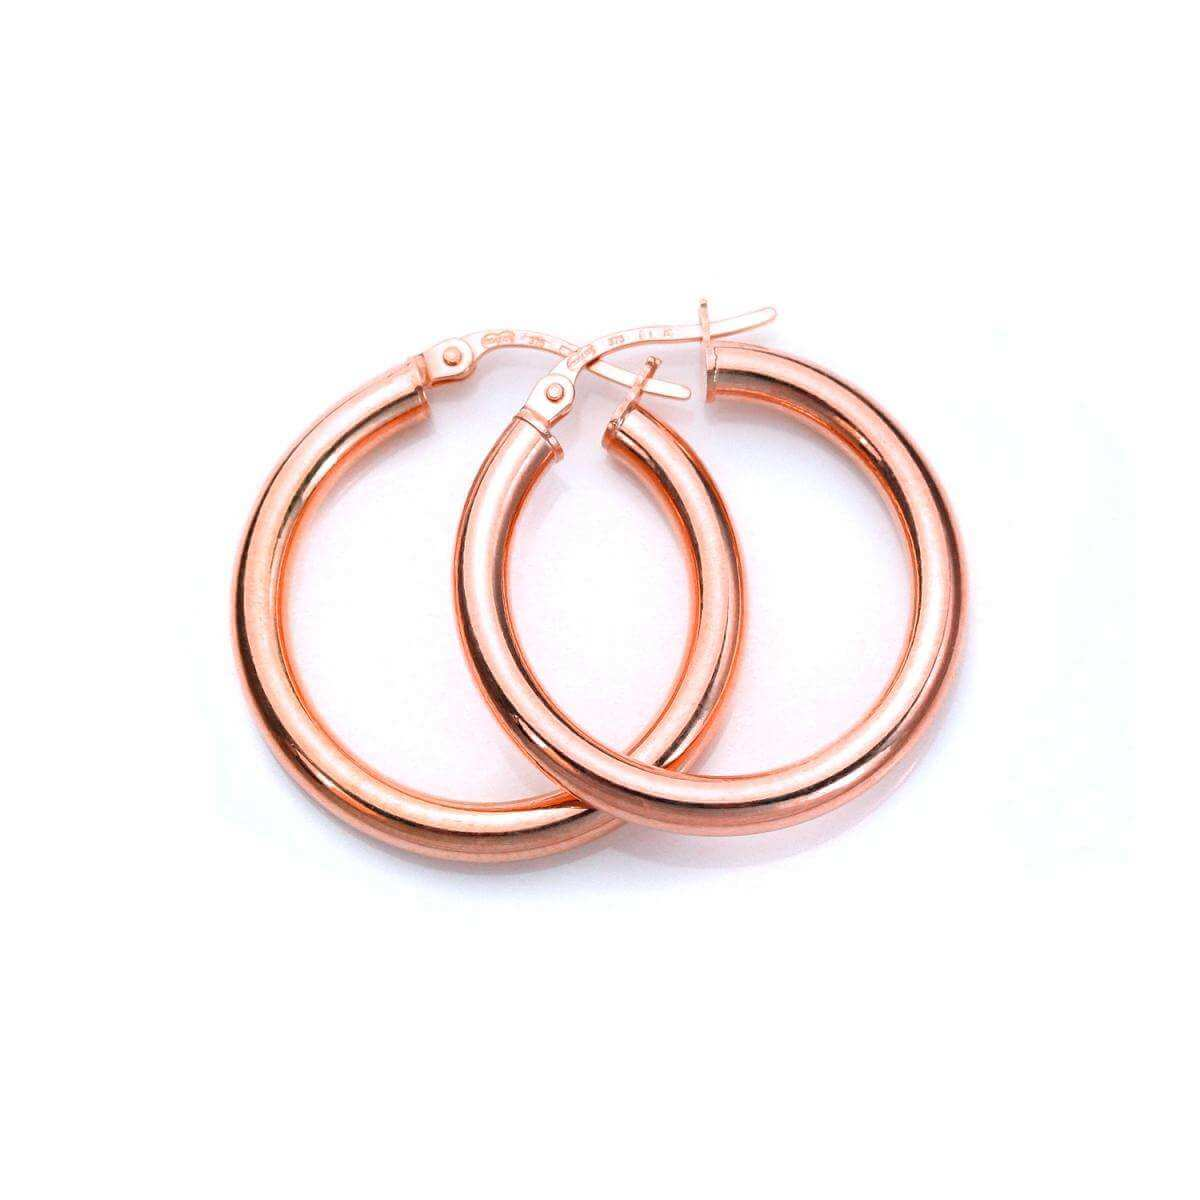 9ct Rose Gold 15mm Plain Sleeper Hoop Earrings